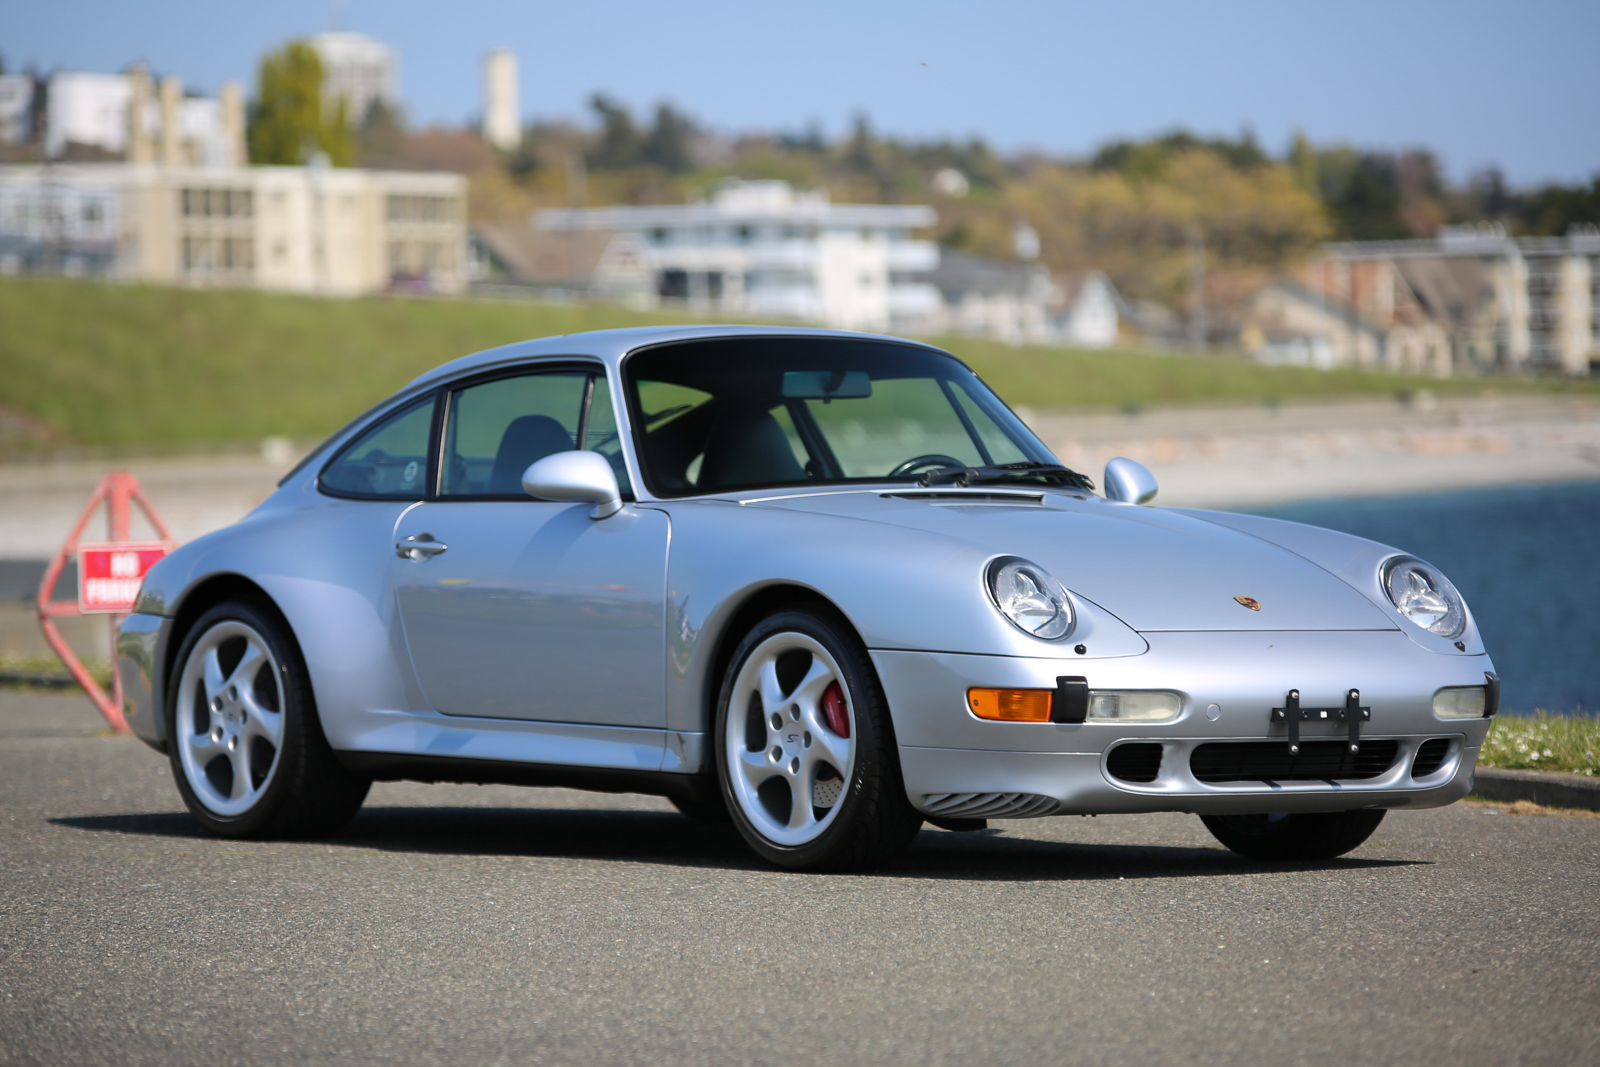 1996 Porsche 993 / 911 Carrera 4 S for sale